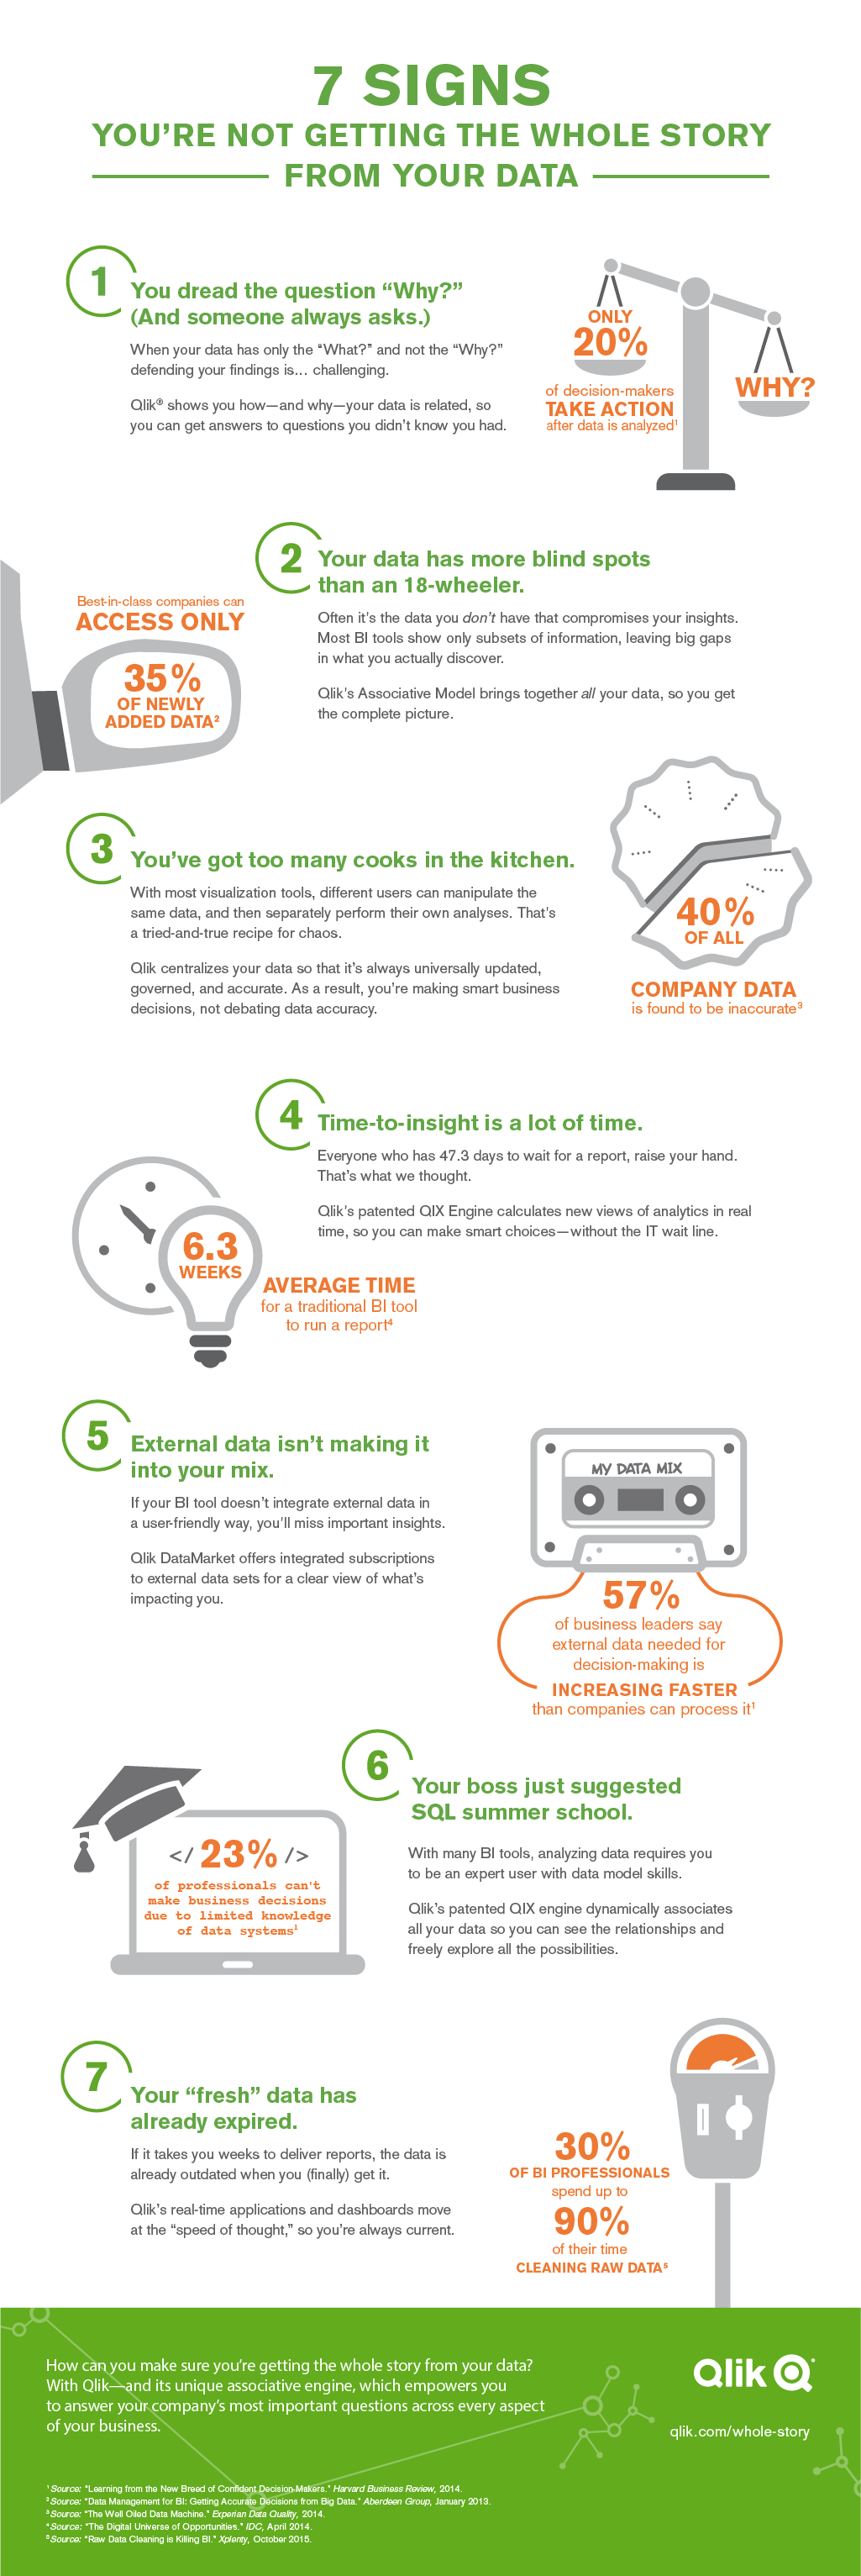 Infographic: 7 Signs You're Not Getting the Whole Story From Your Data